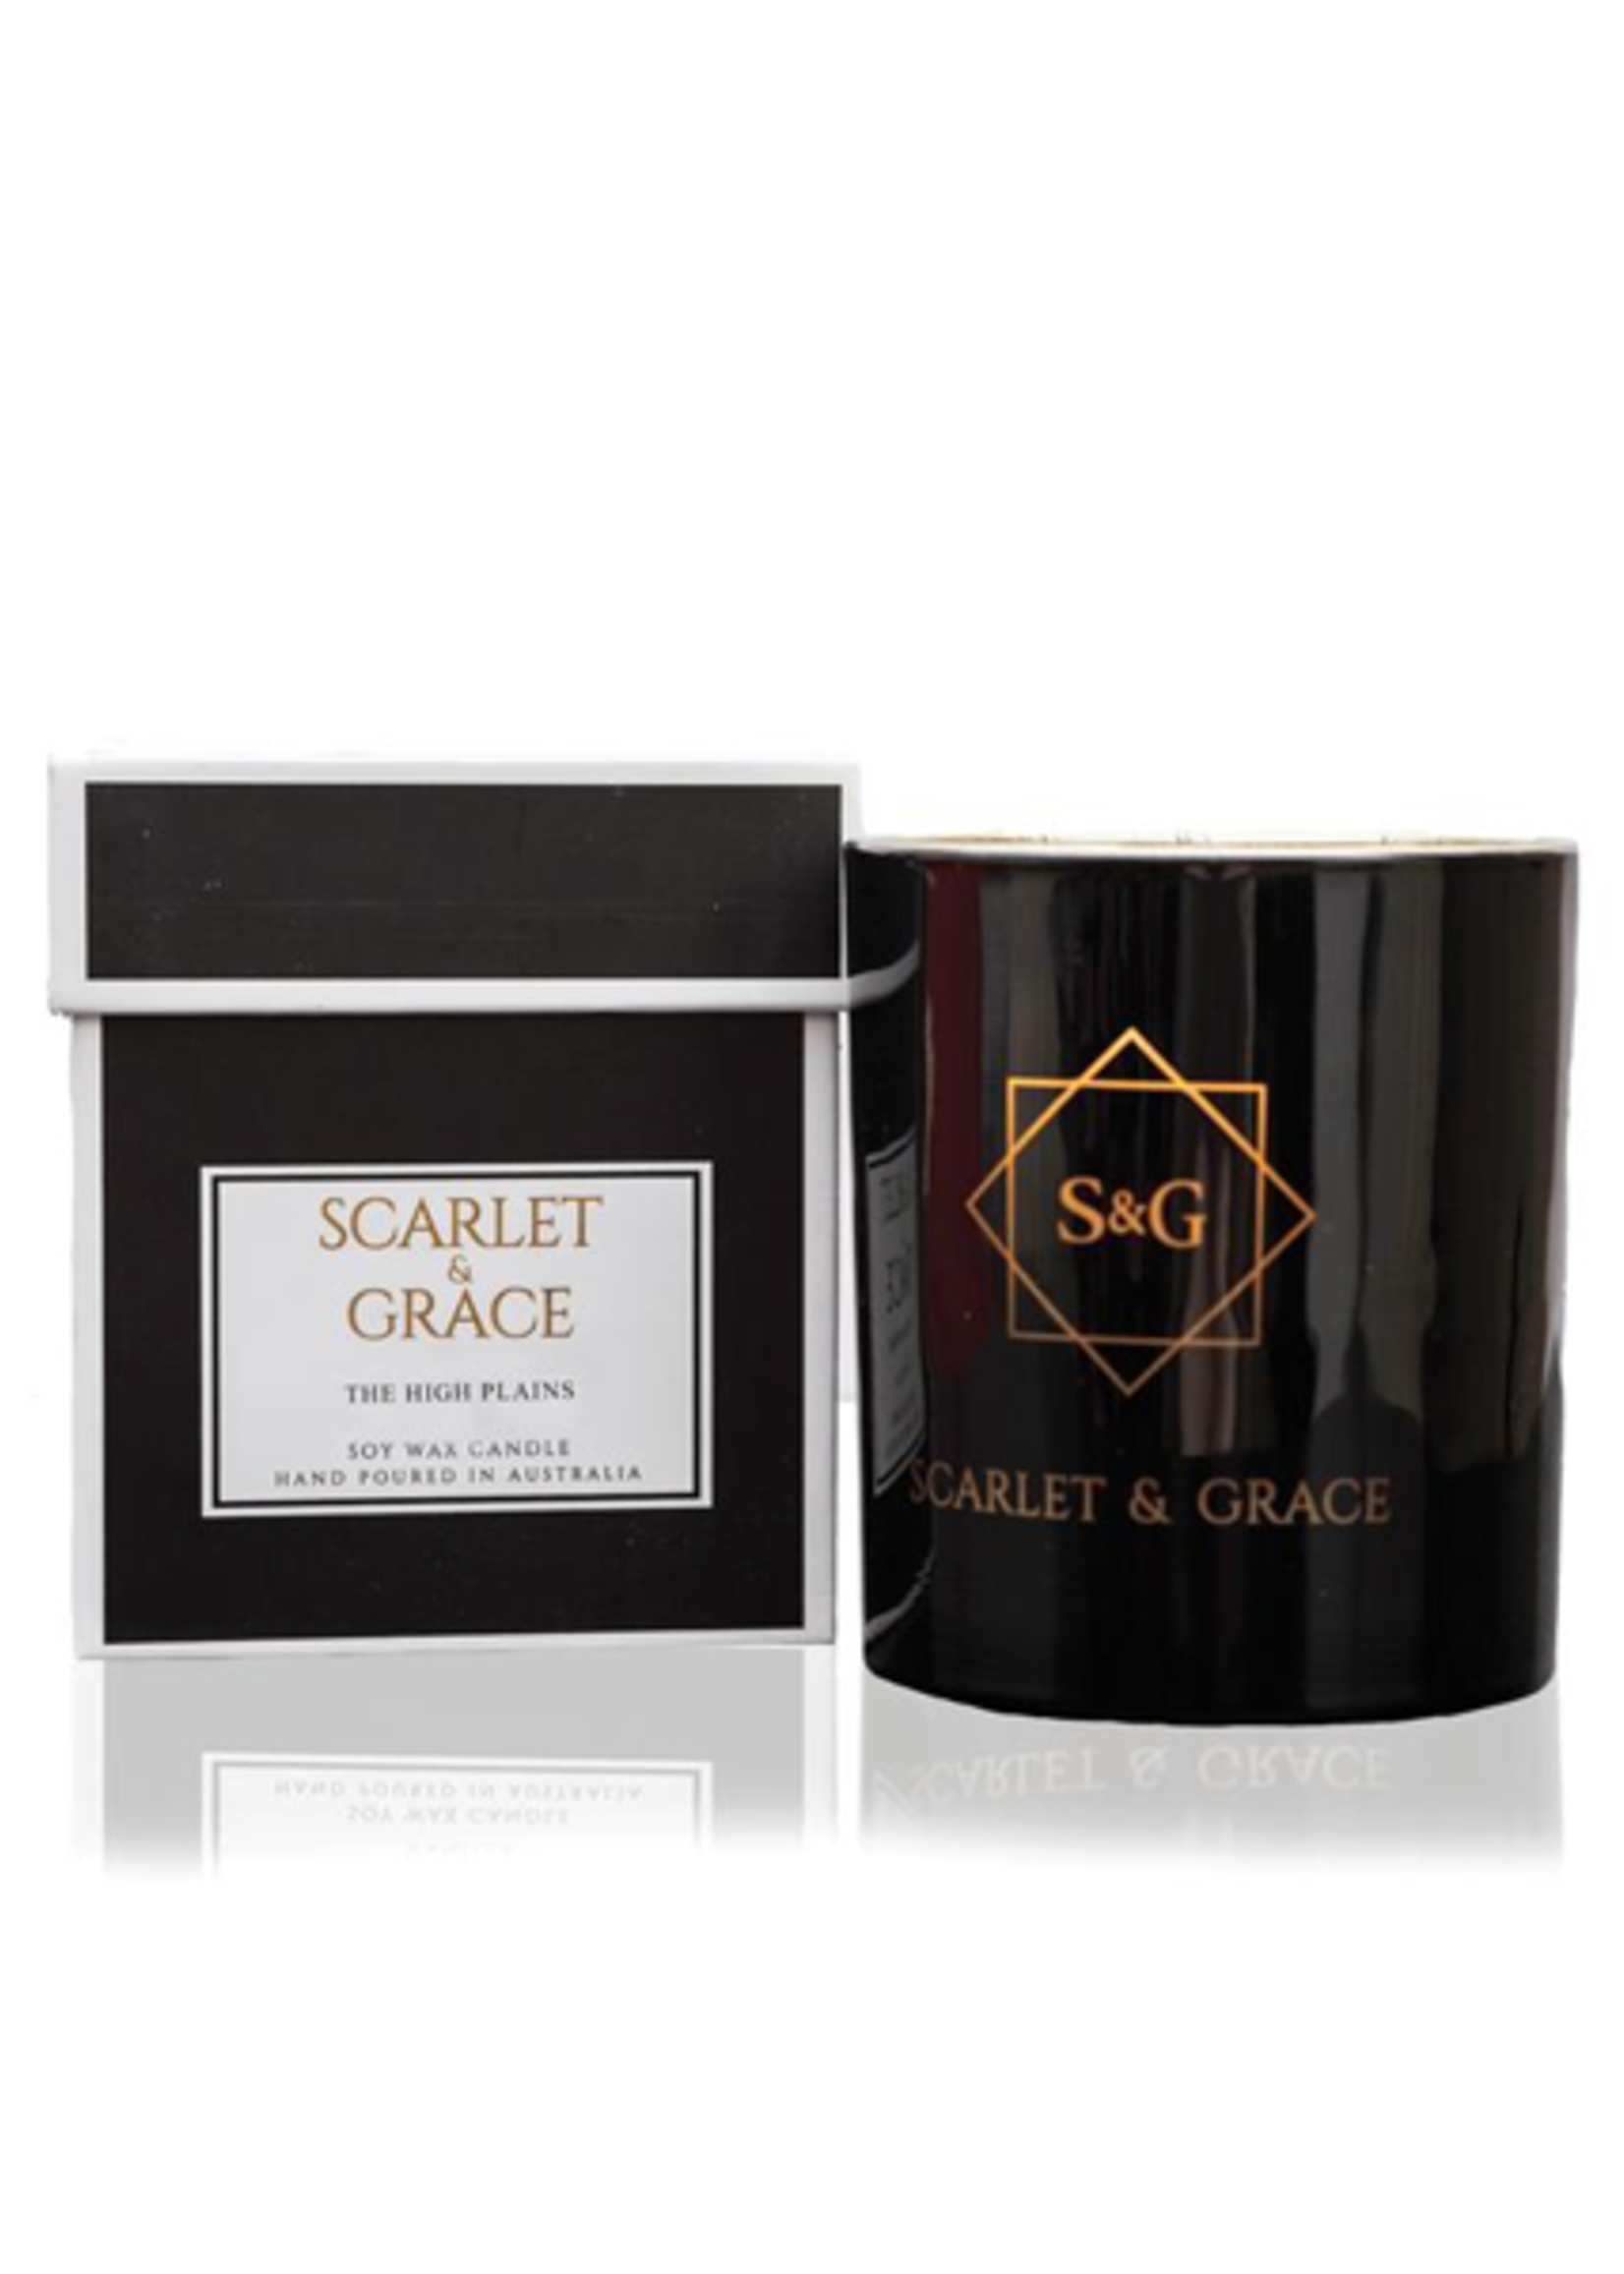 Scarlet & Grace 340g Soy Wax Candle - The High Plains